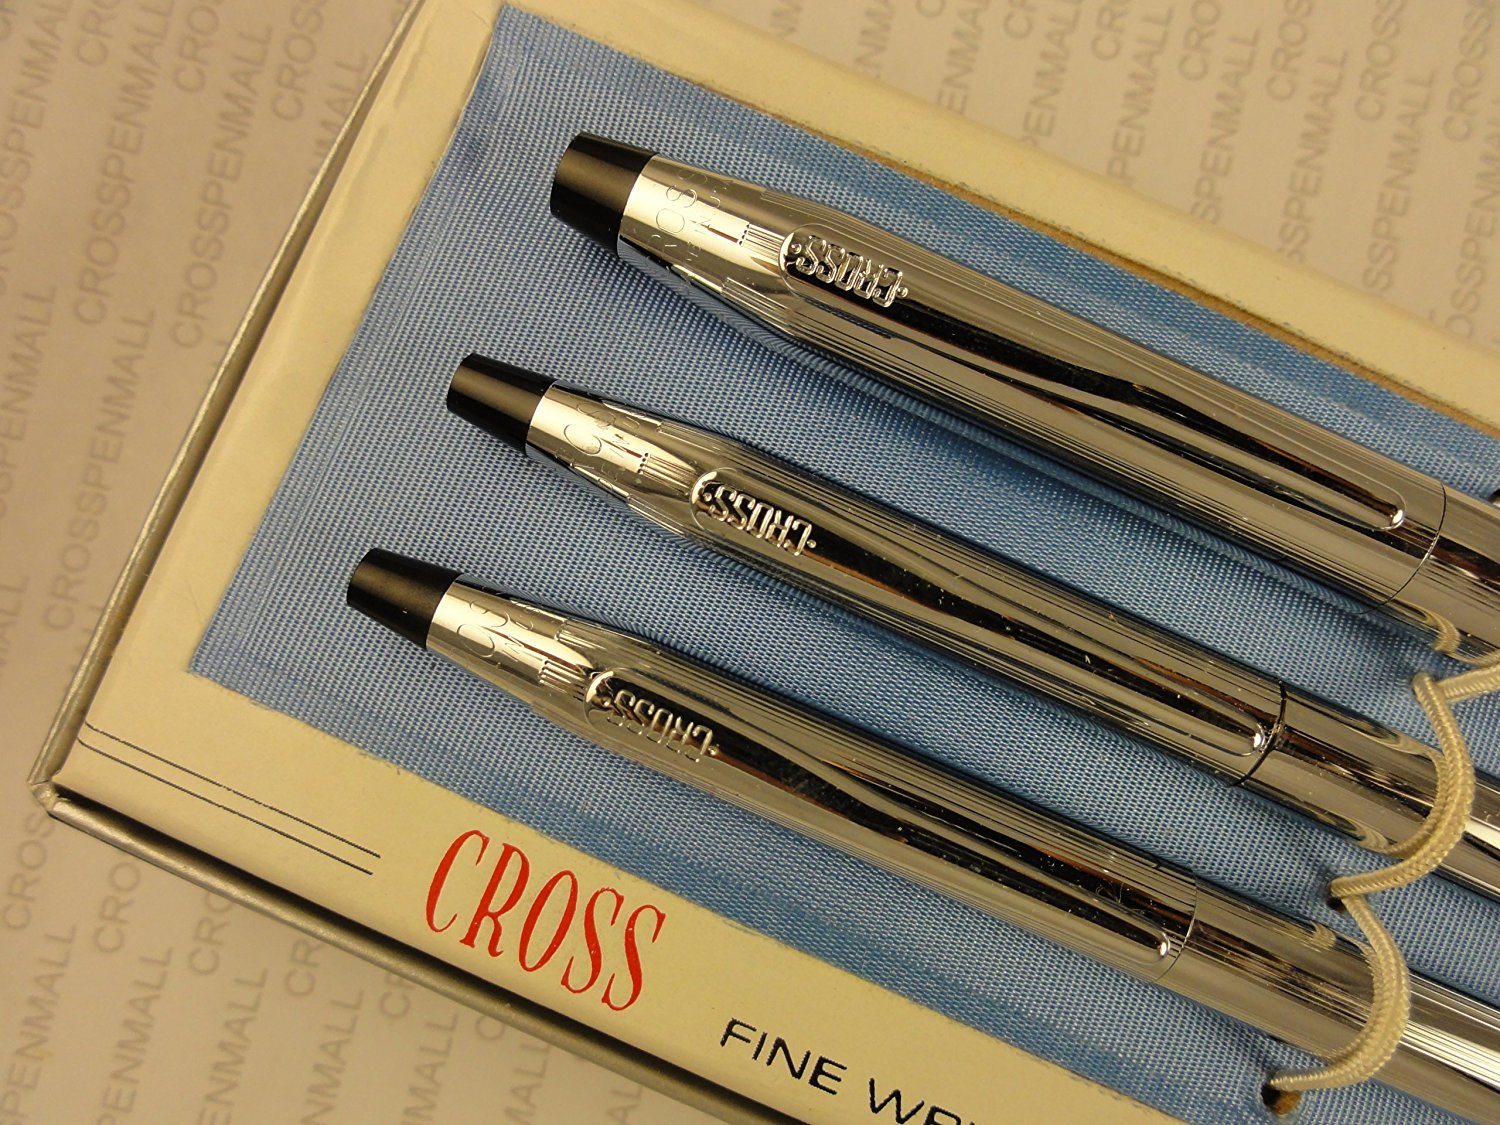 Cross Made in the USA Classic Century Lustrous Chrome Trio of Selectip Gel Ink Rollerball Pen, Ball-point Pen and 0.9MM Pencil Set